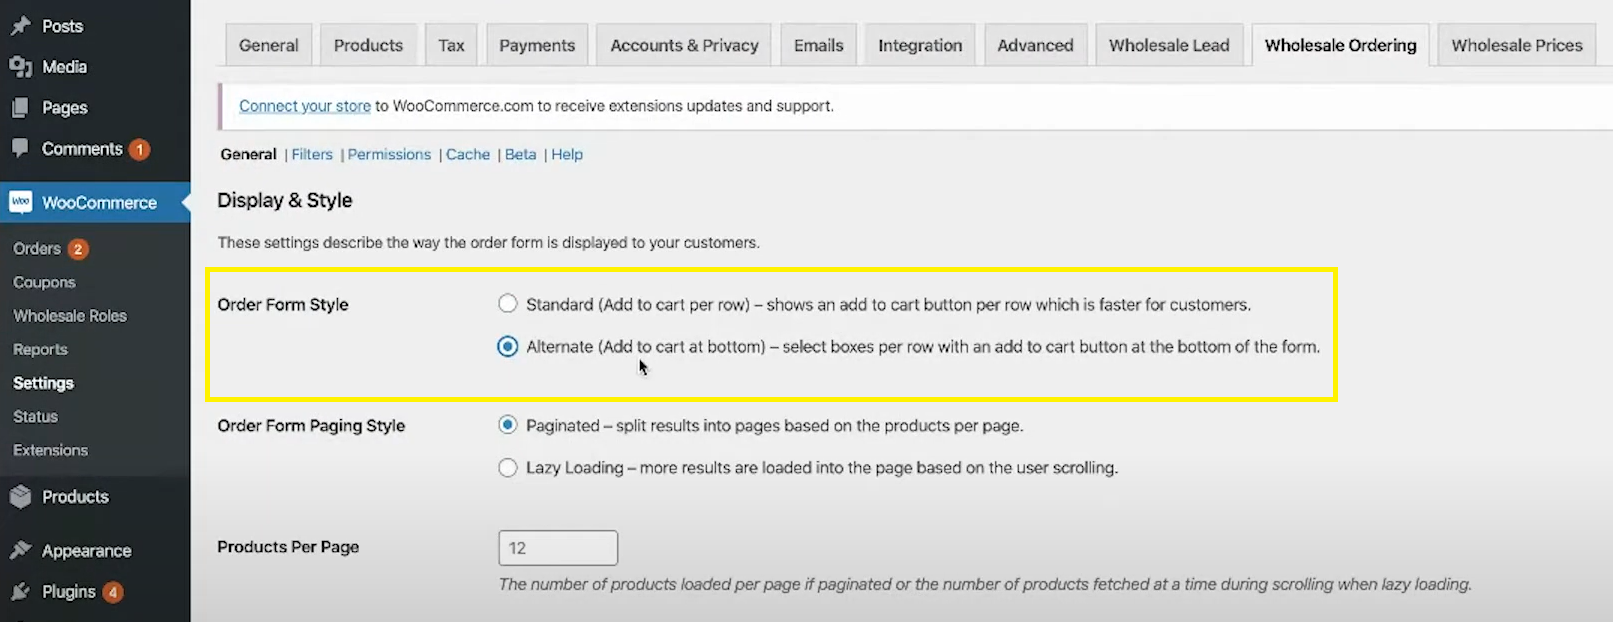 The Wholesale Ordering settings page